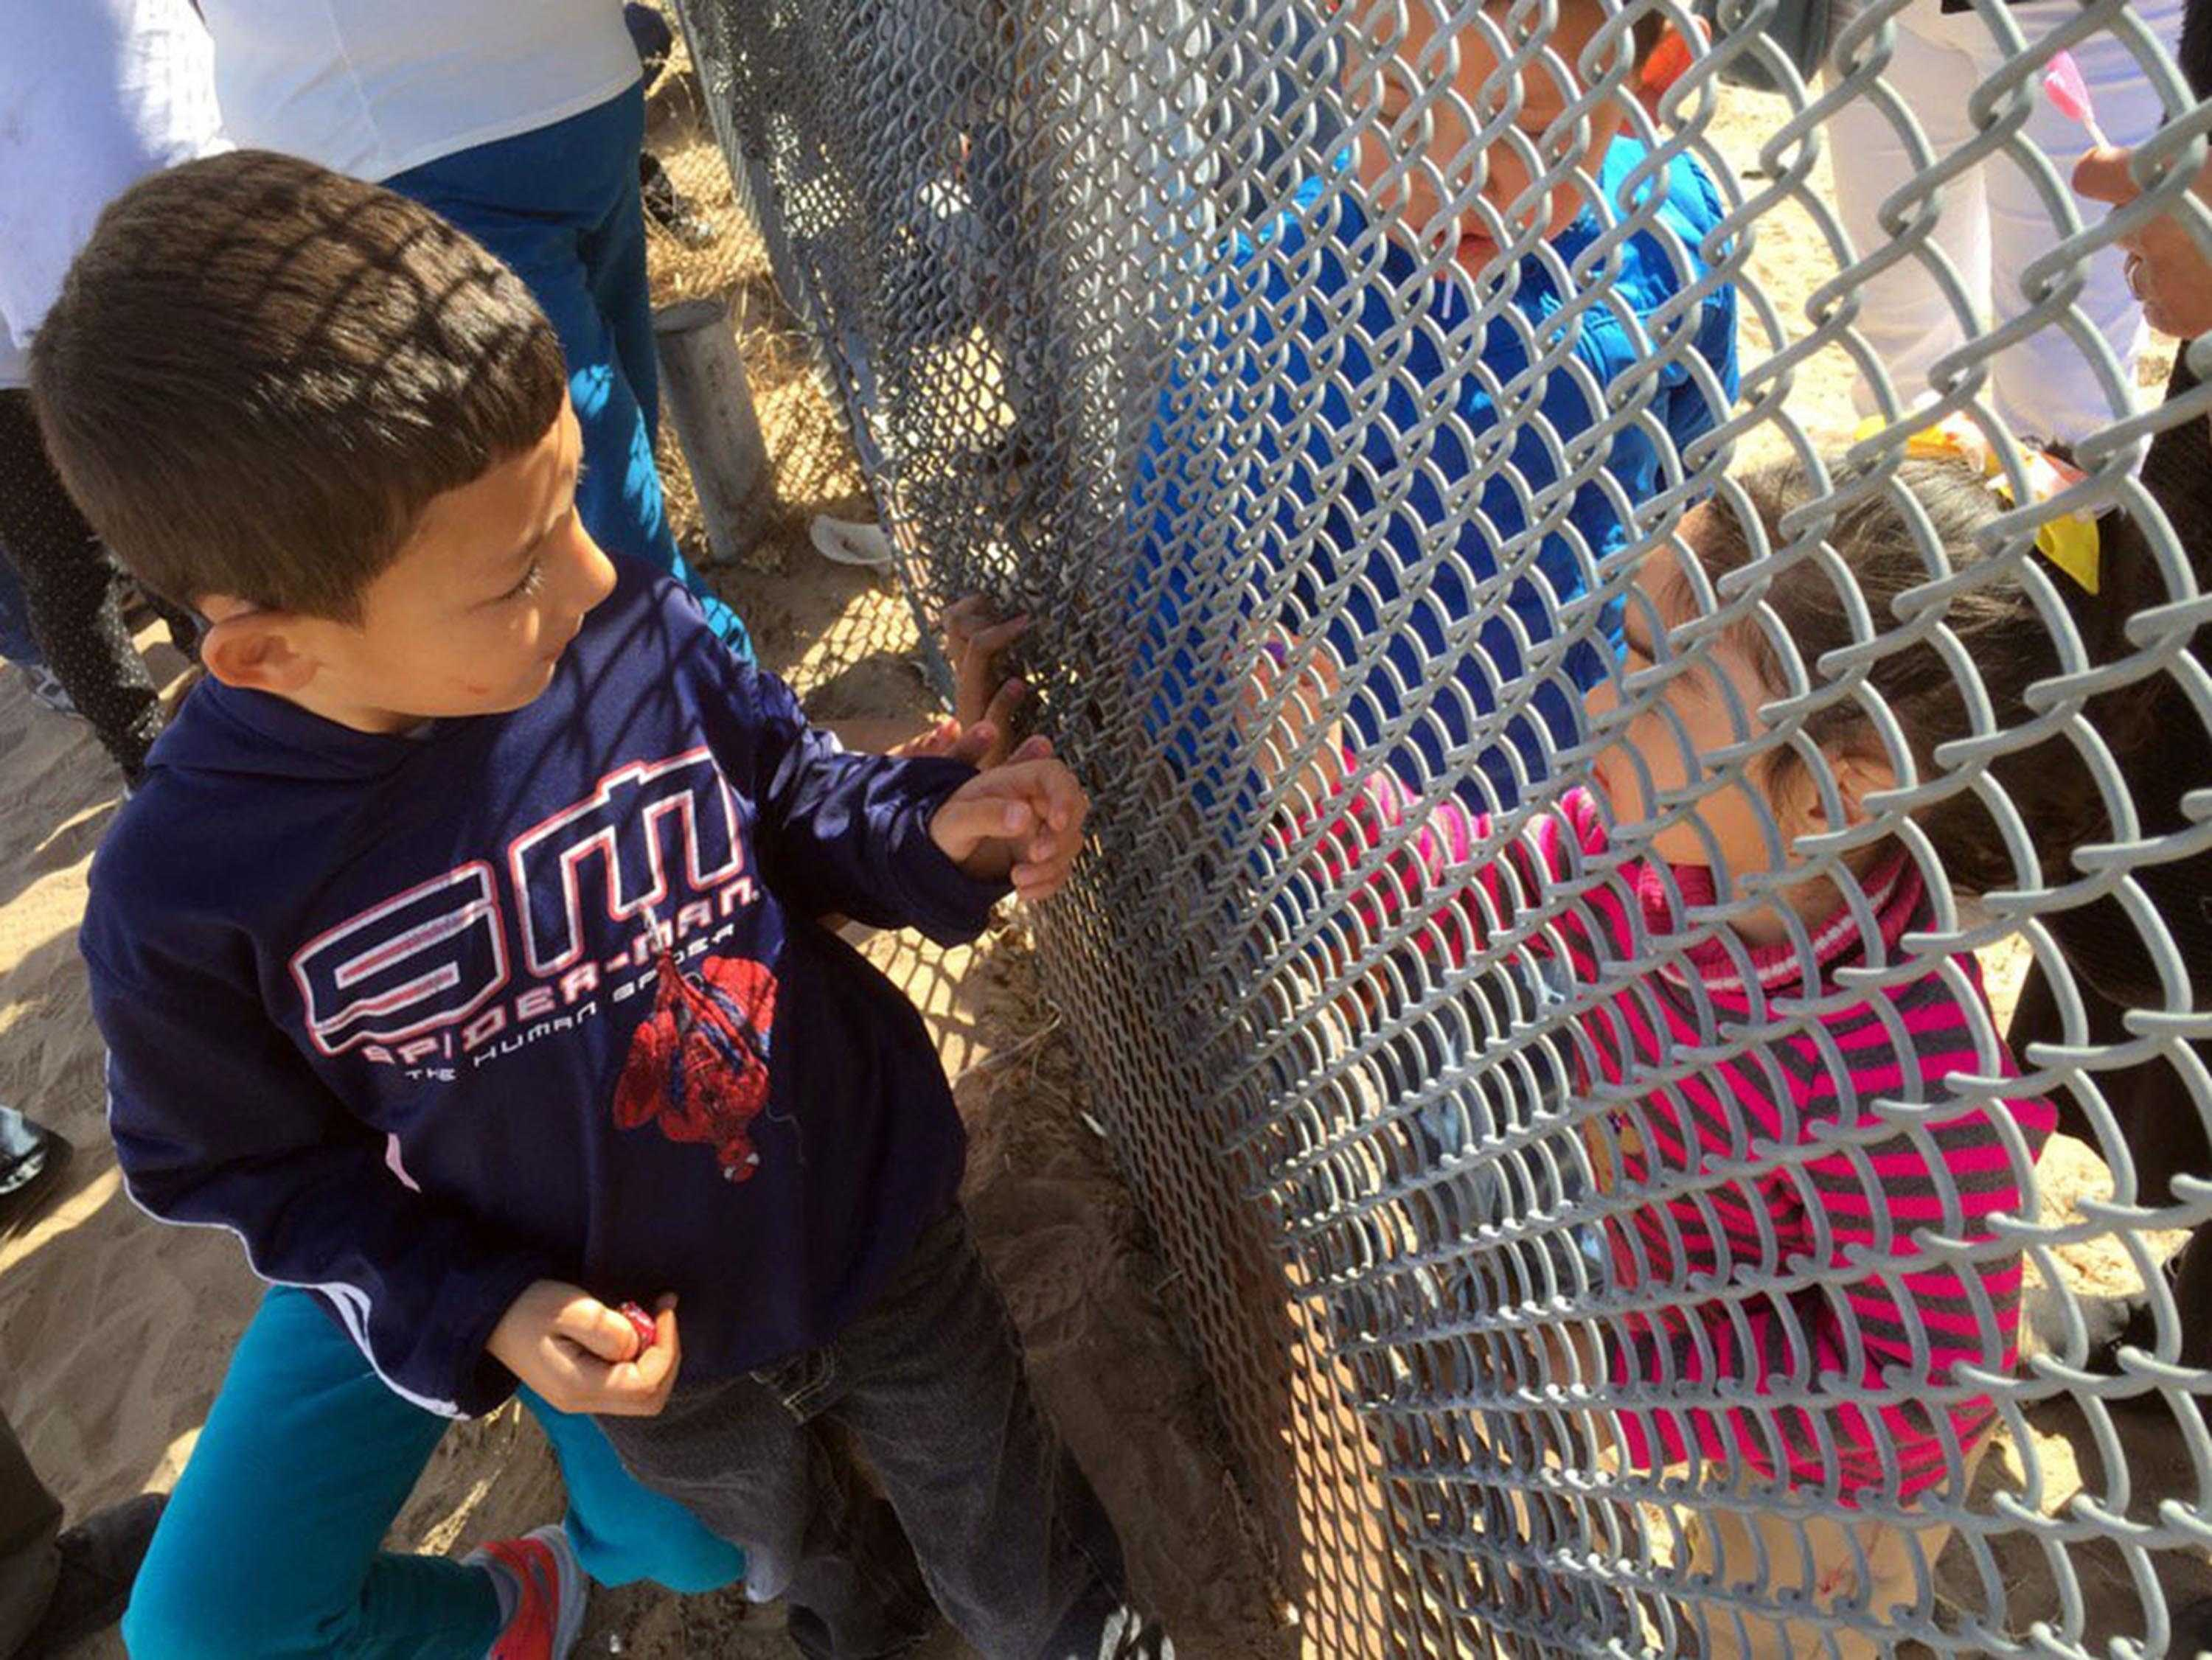 Families and boarder residents who live on both sides of the U.S.-Mexico border gathered last year along a chain link fence separating the two countries. Baxter says